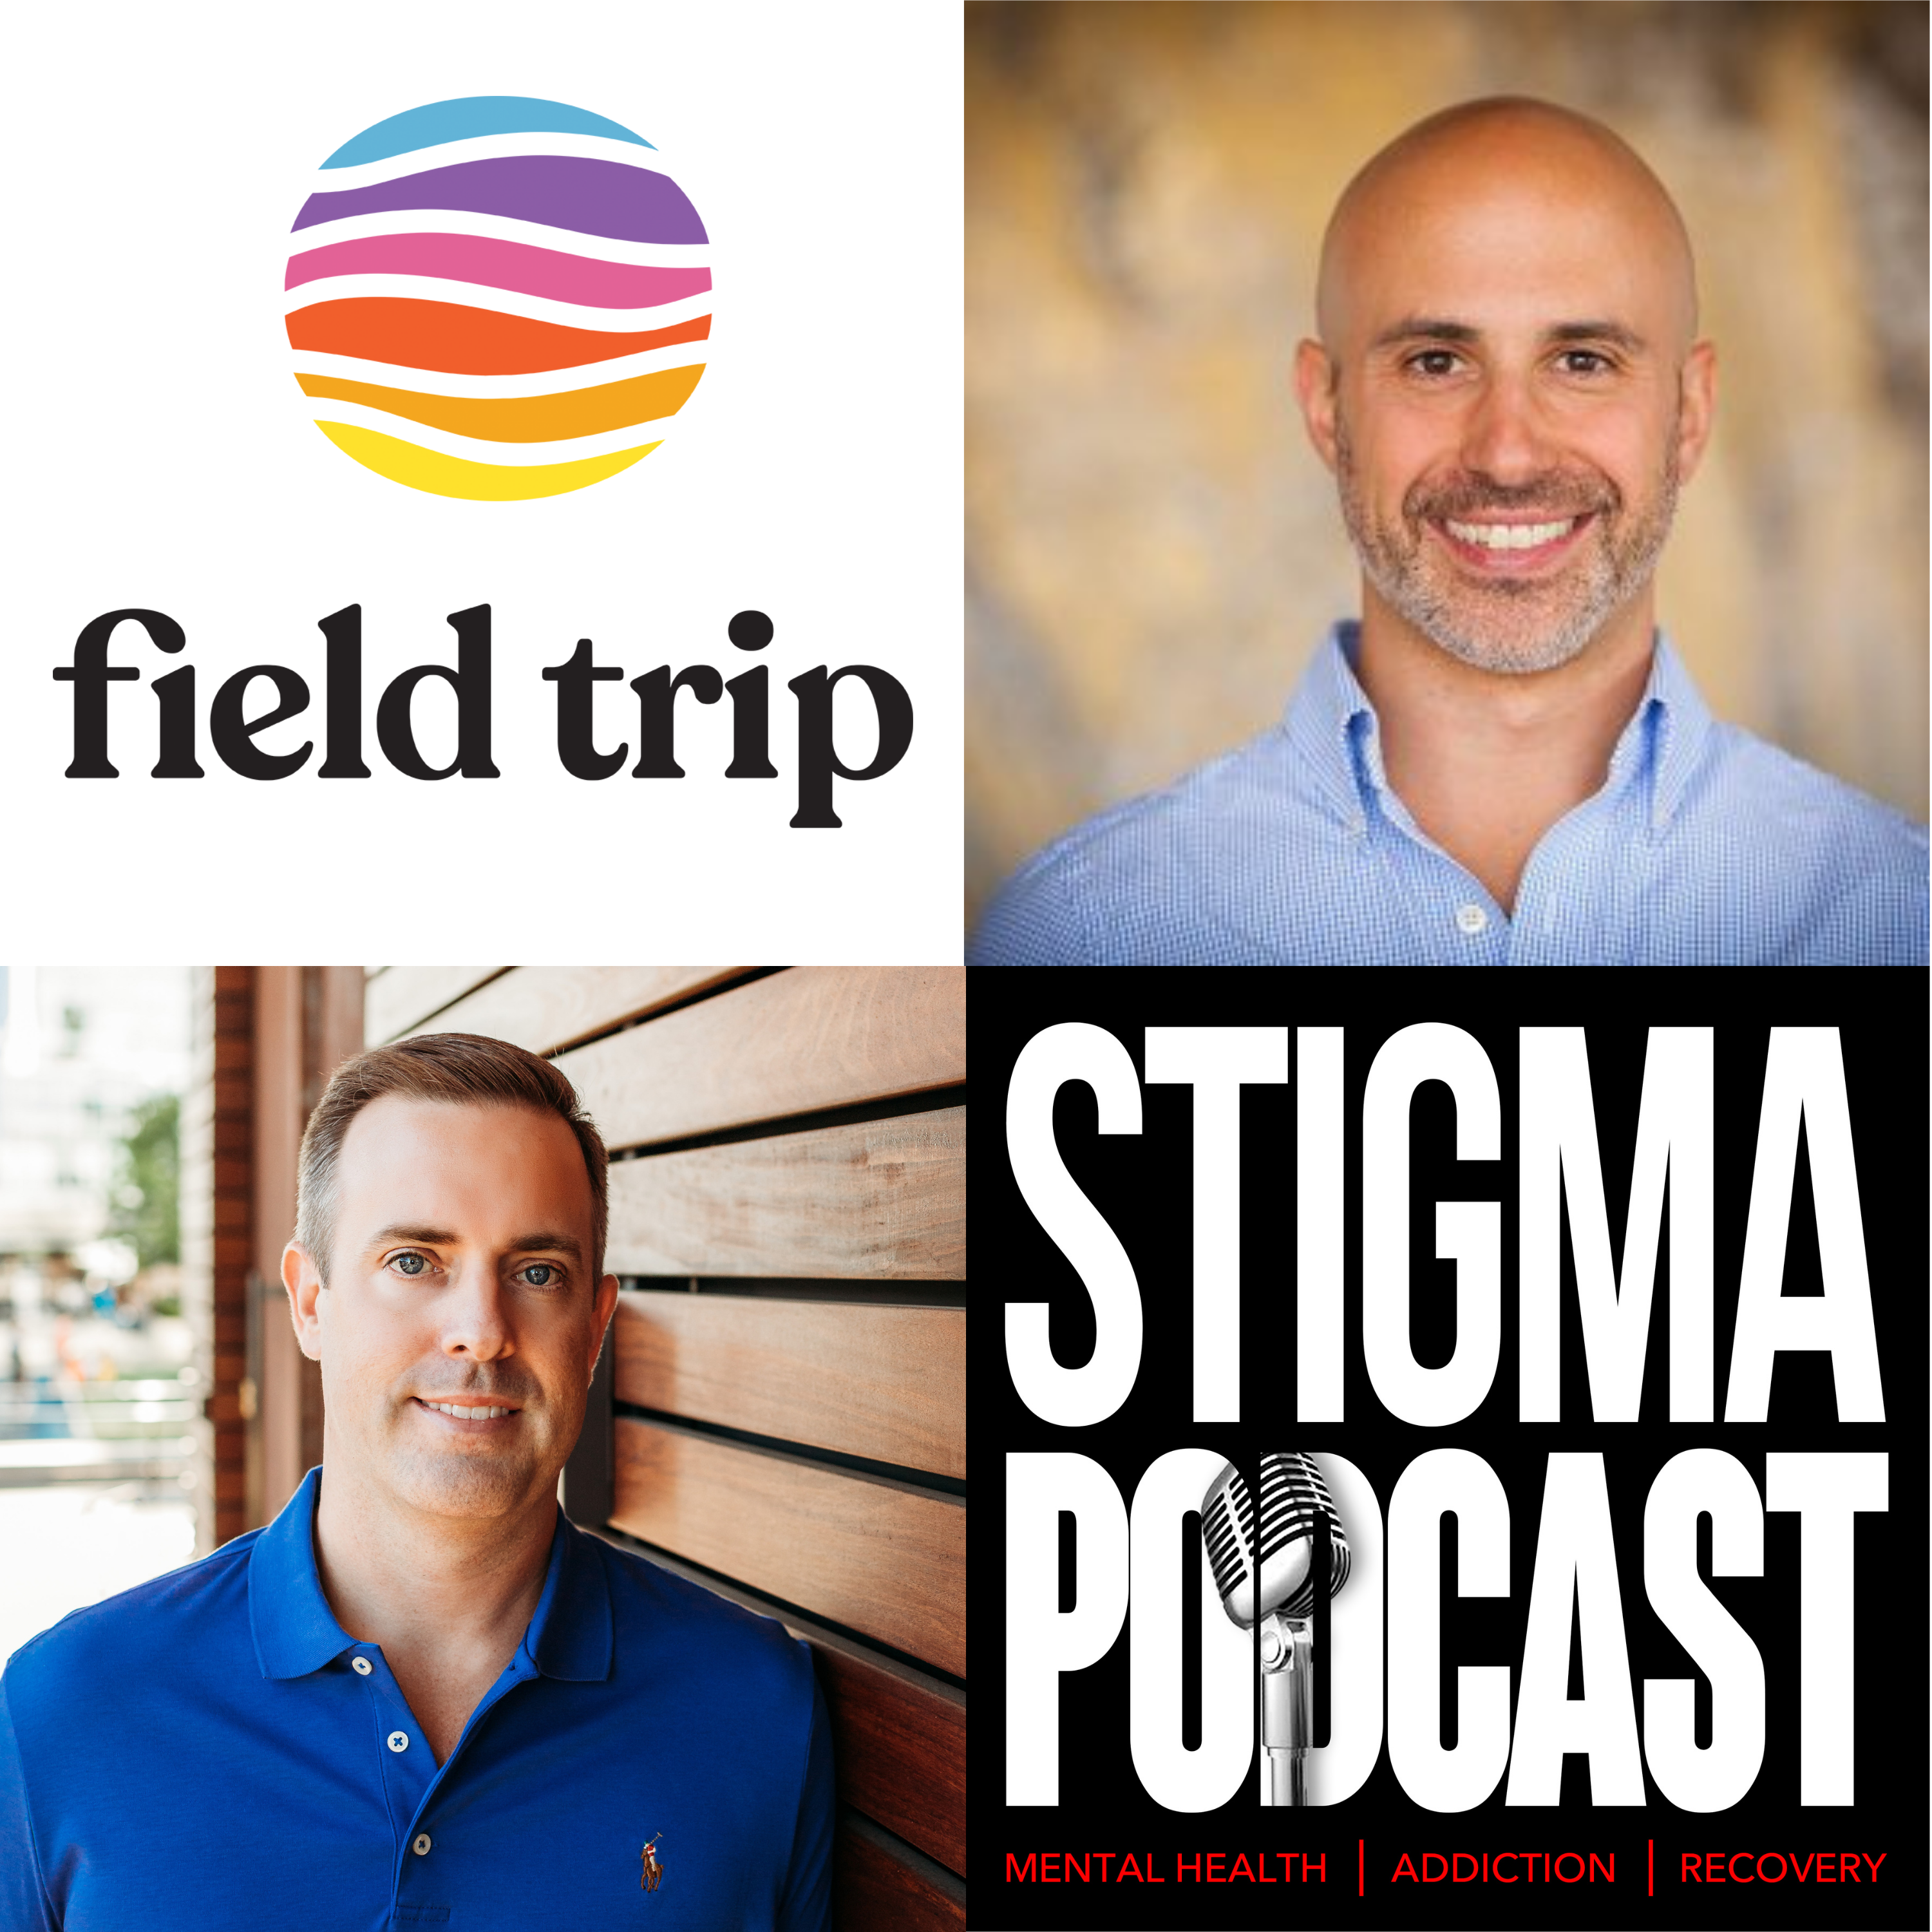 Stigma Podcast - Mental Health - #70 - How Psychedelic Treatments Work with Ronan Levy, Founder of Field Trip Health